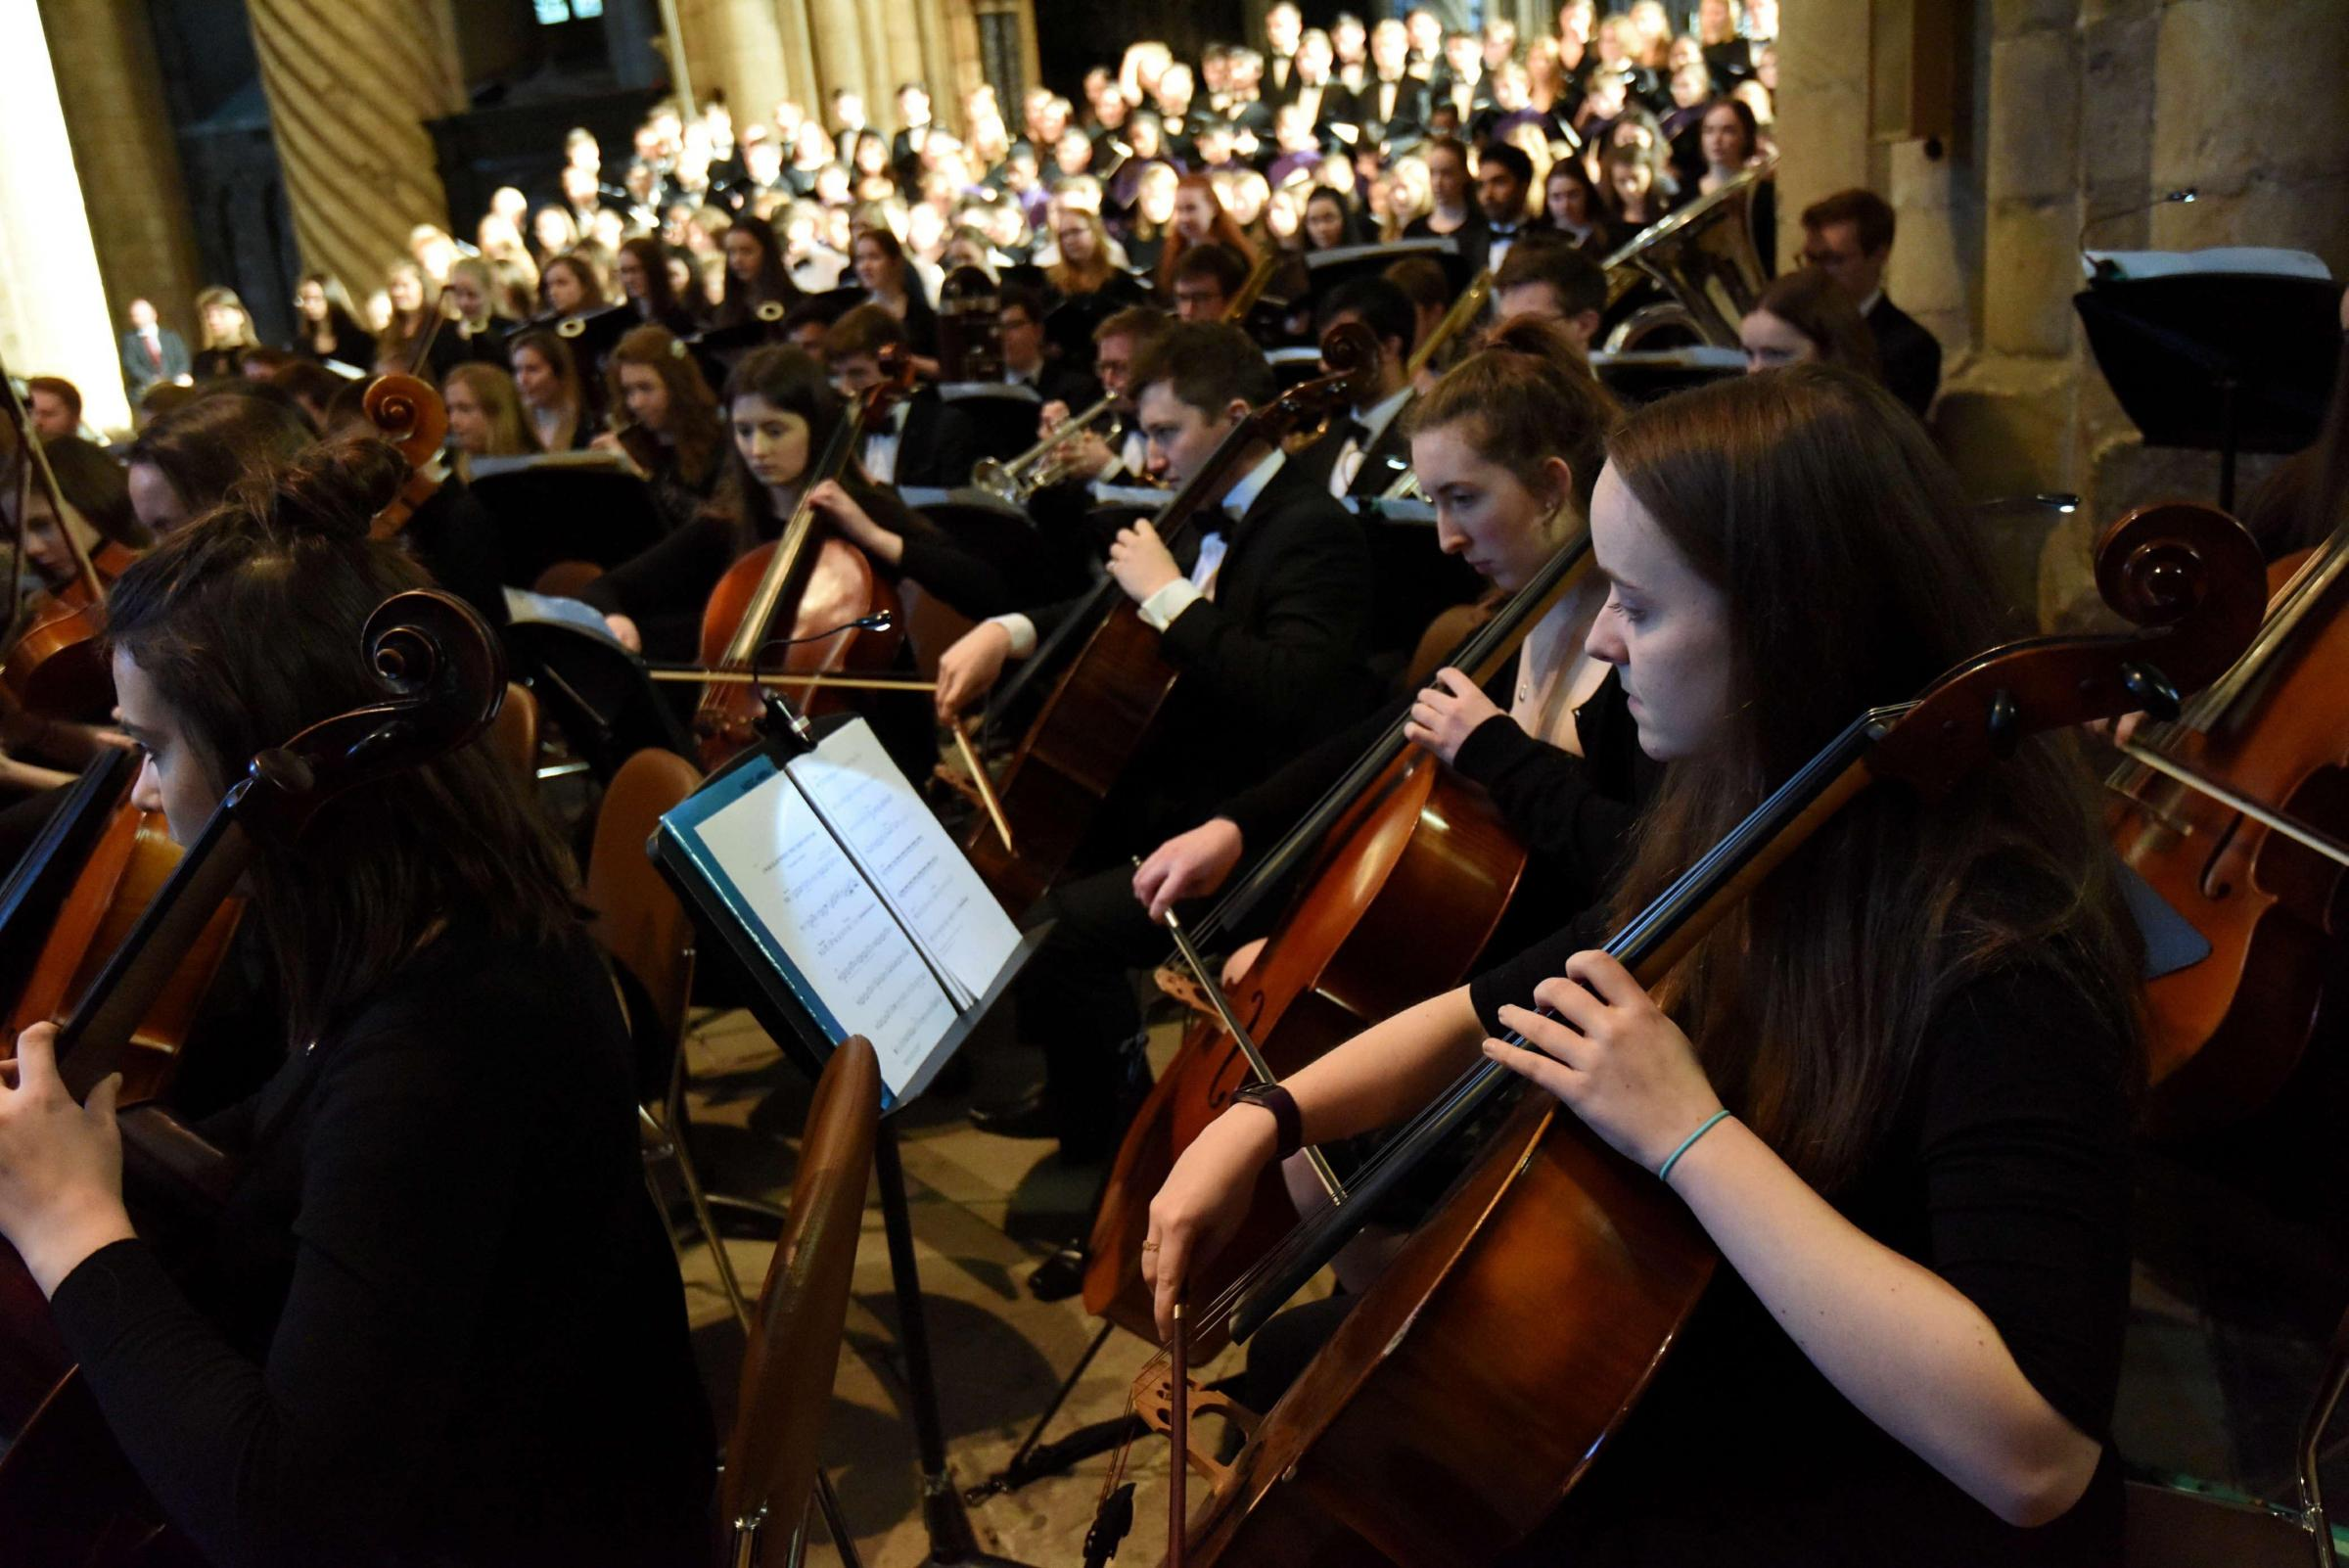 CONCERT: Durham University students and Durham Choristers performing for Prince Charles